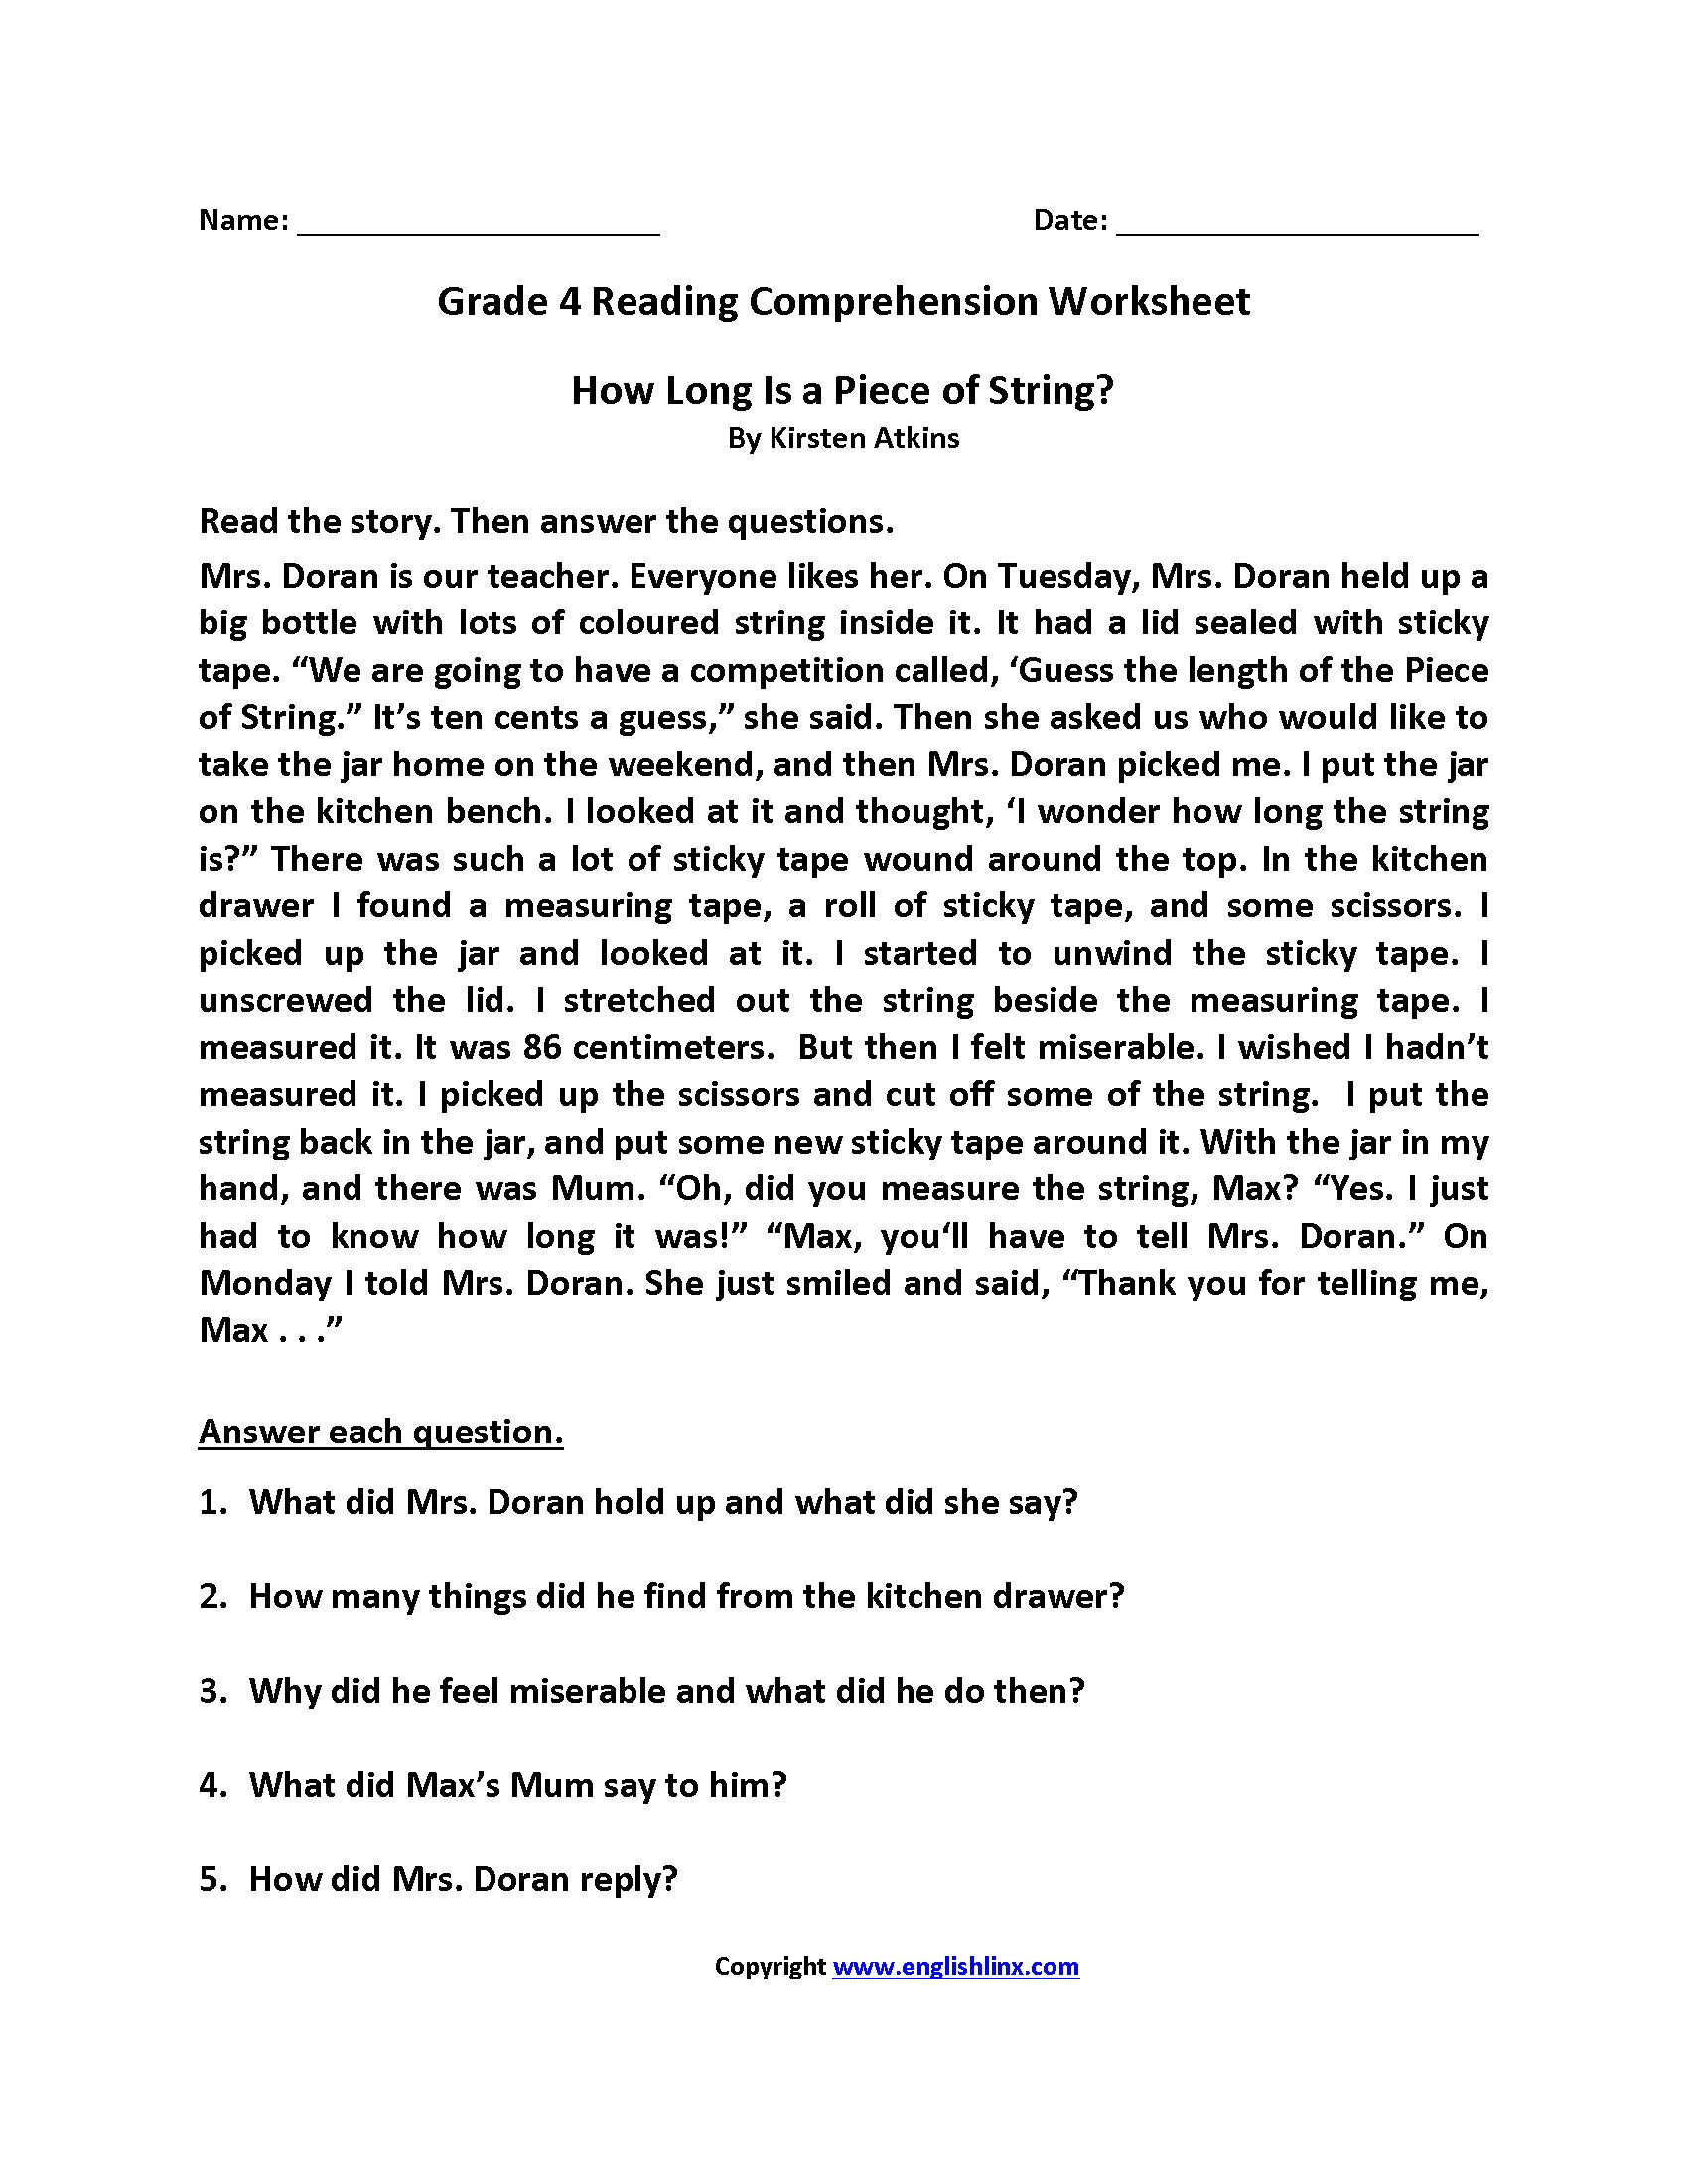 4 Sample Grade 4 Reading Comprehension